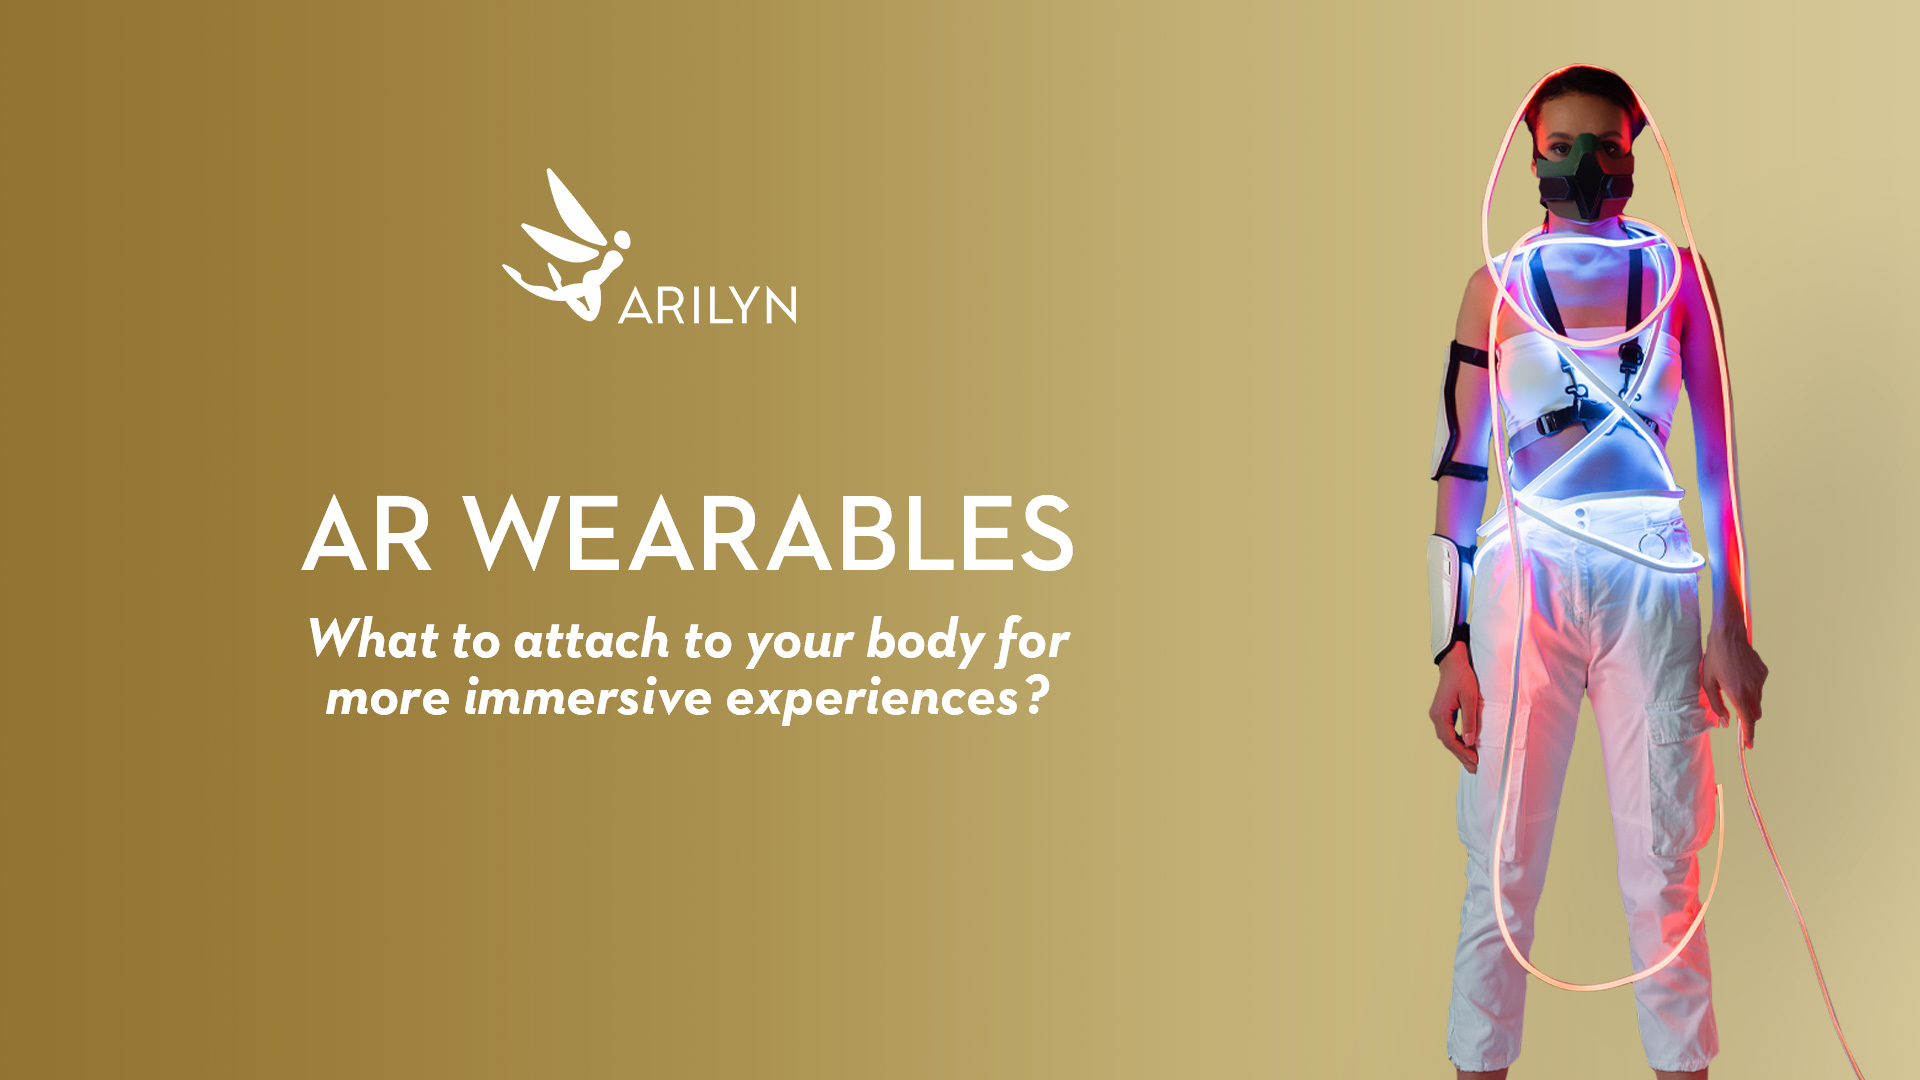 AR wearables to attach to your body for more immersive experiences